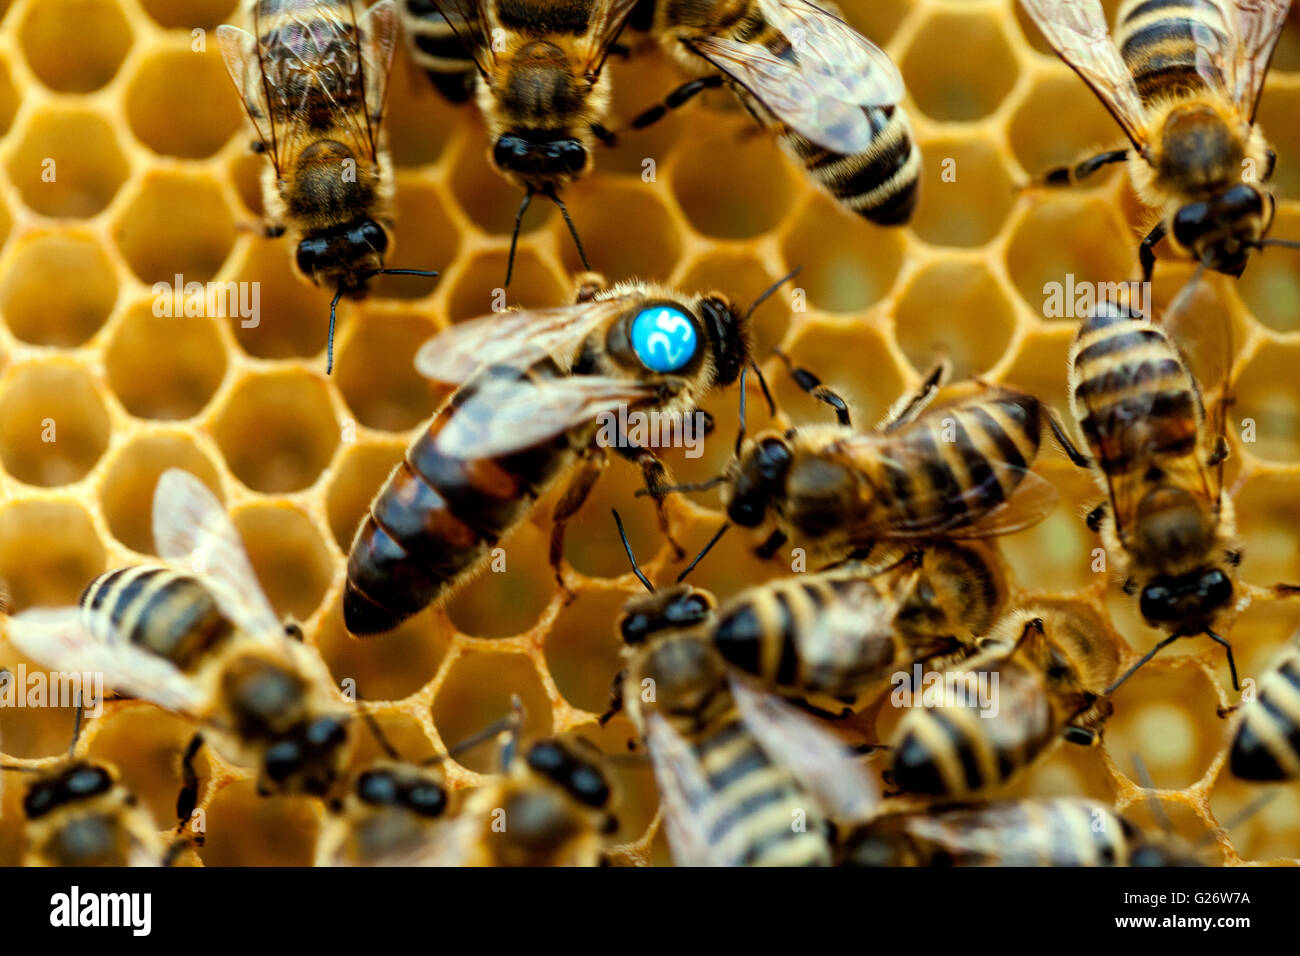 Bee queen close up - Stock Image